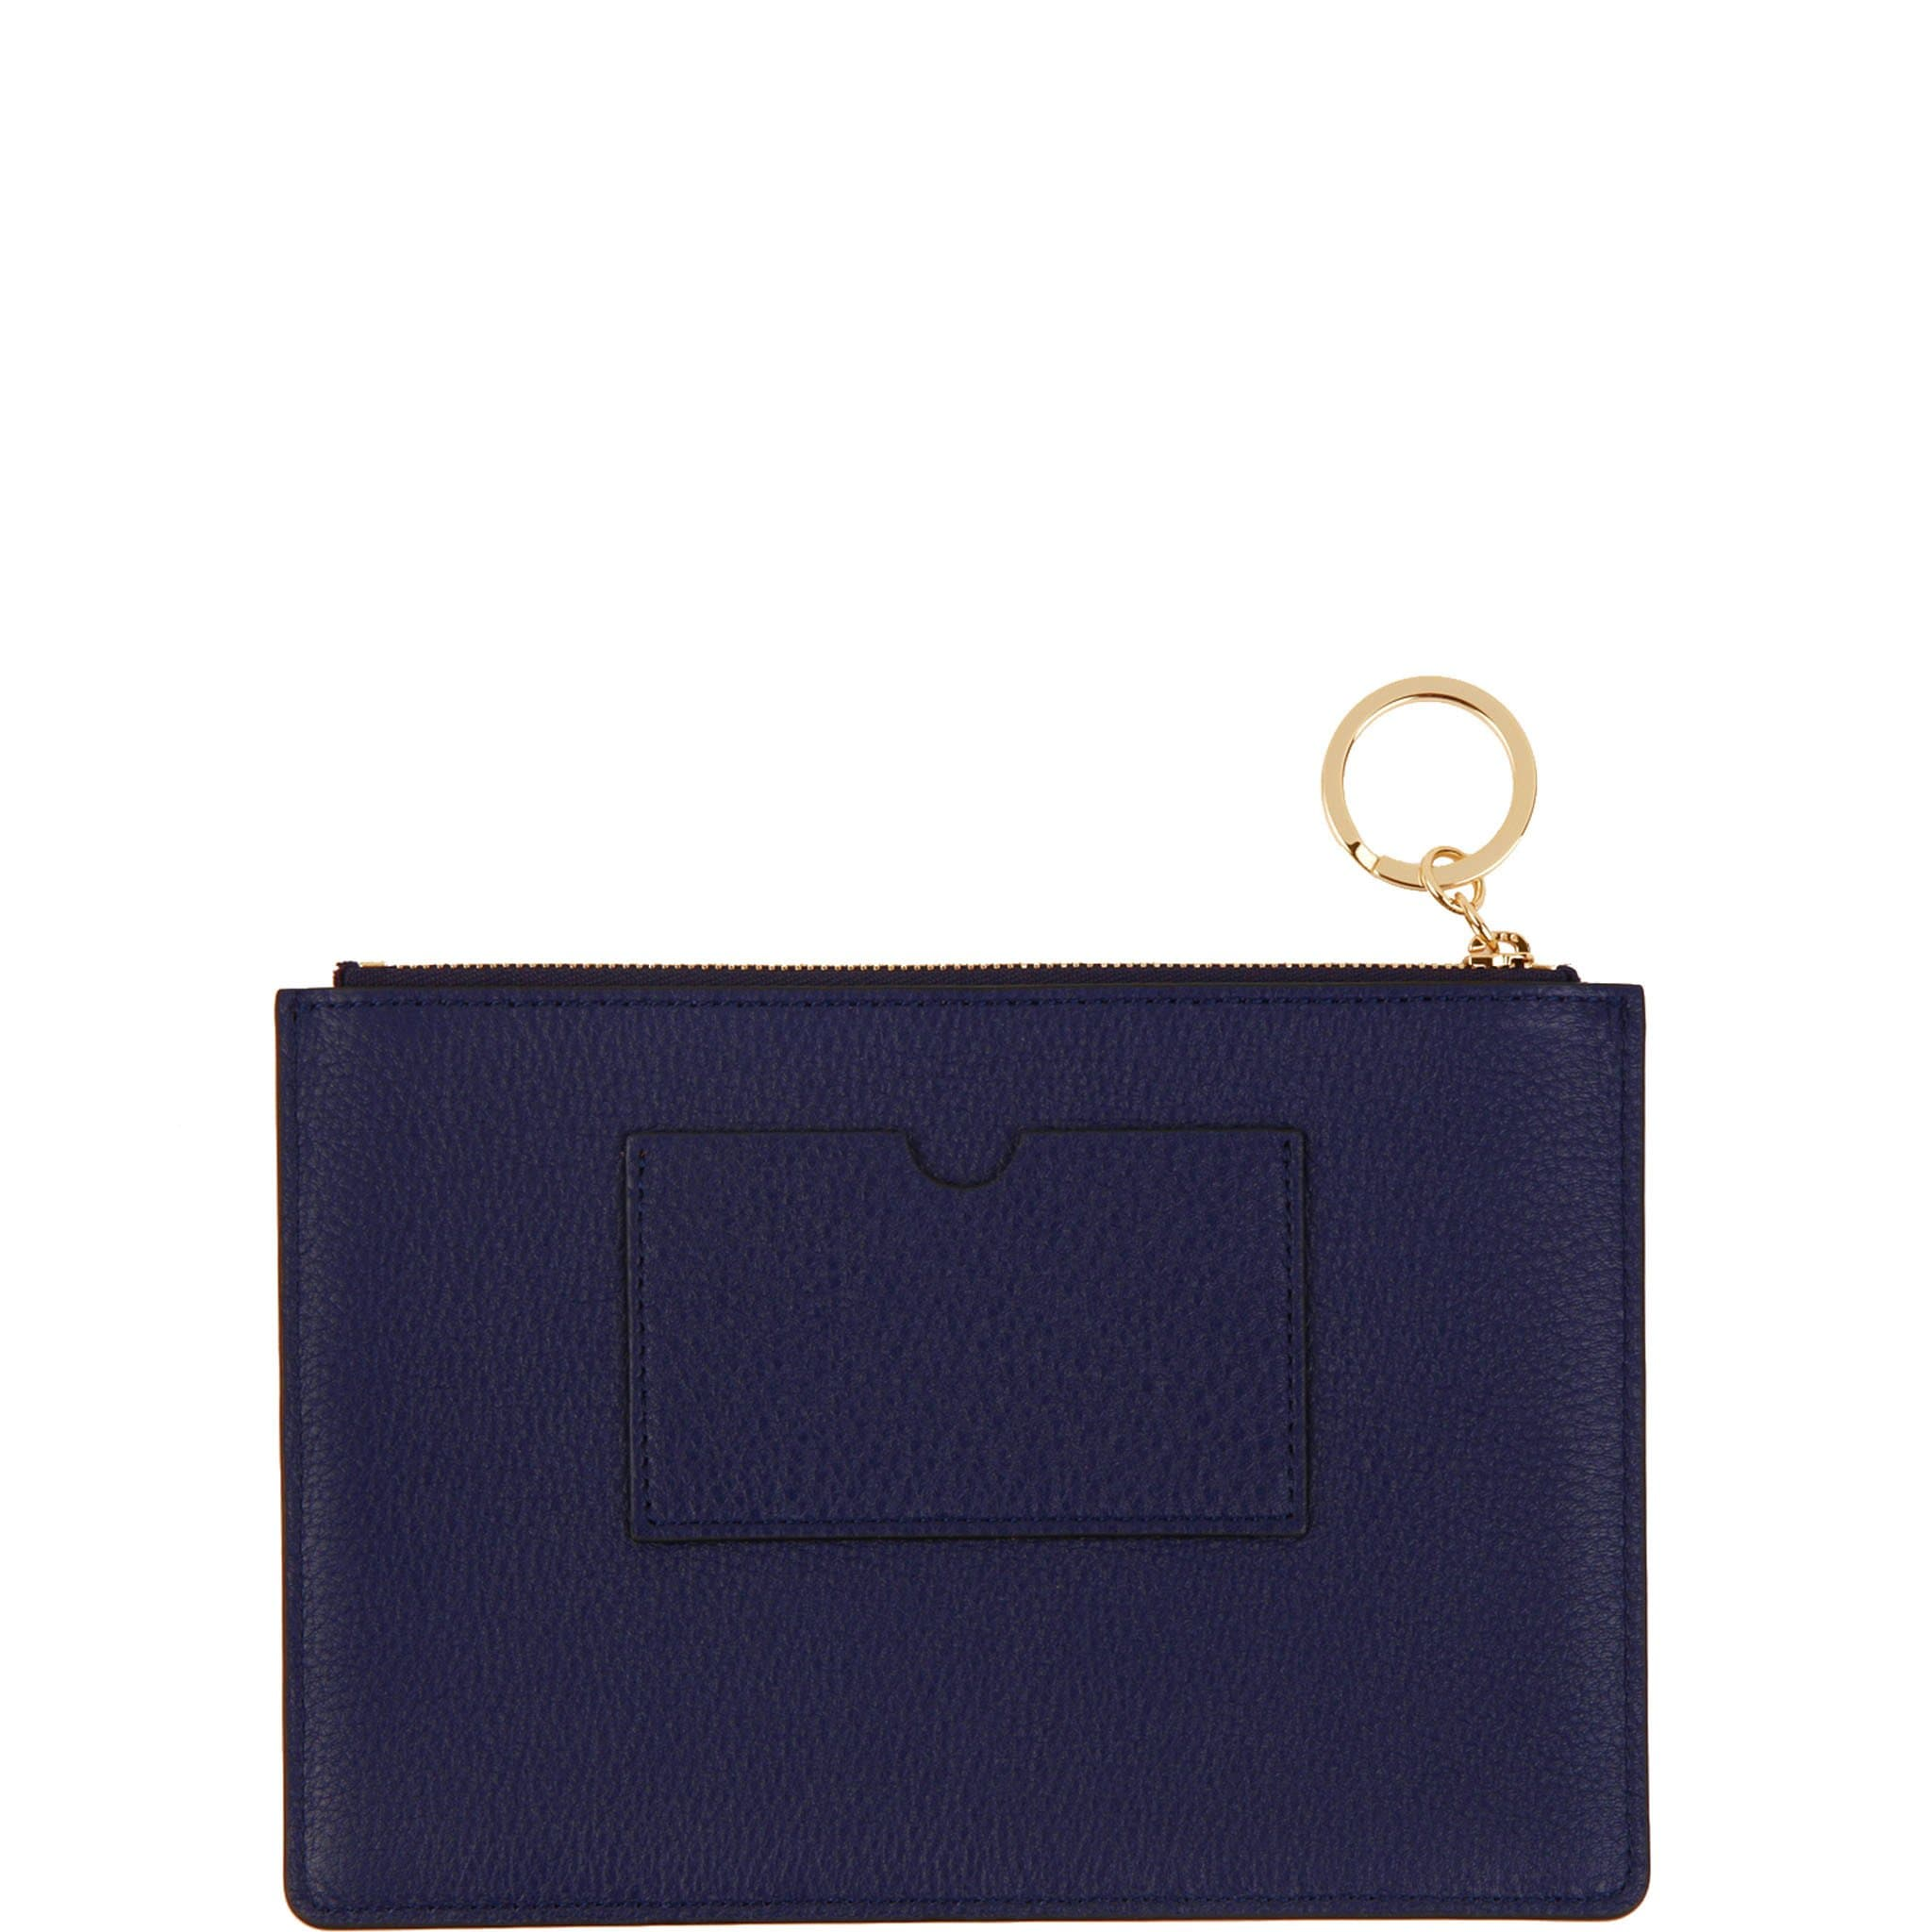 Medium Slim - Navy Blue - OAD NEW YORK - 2